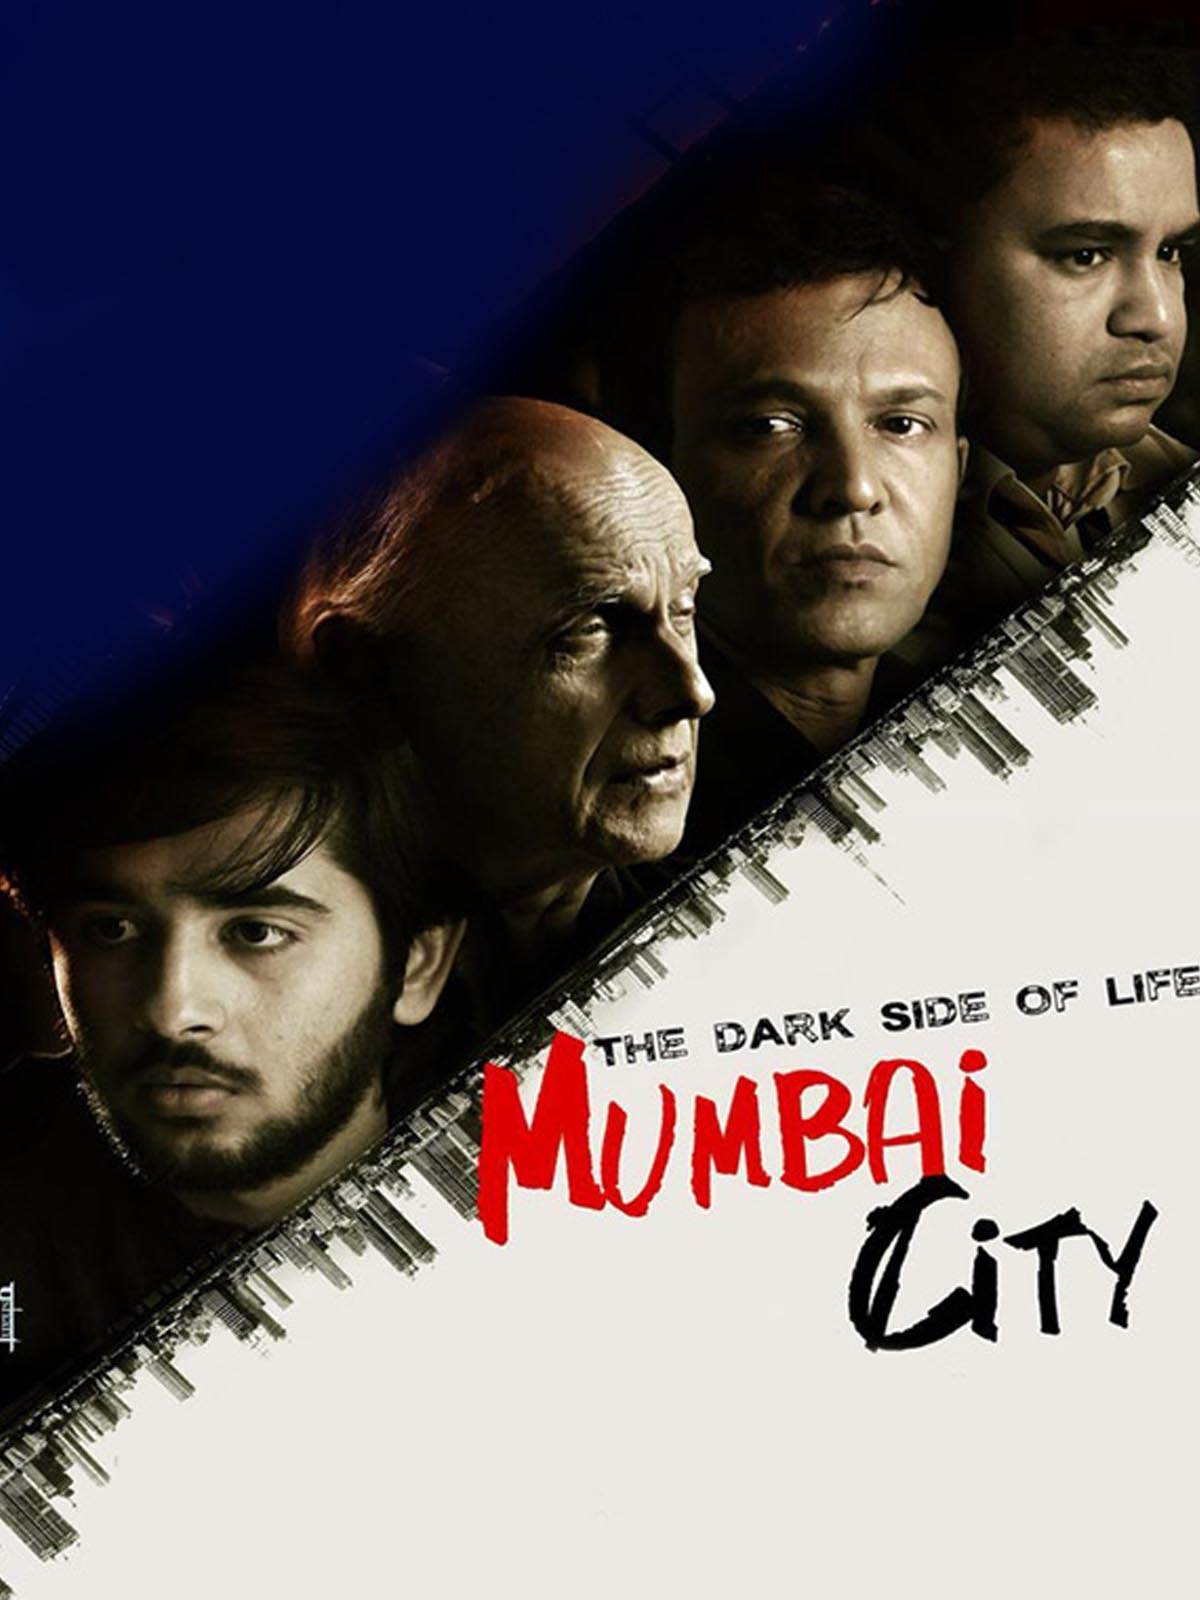 The Dark Side Of Life - Mumbai City